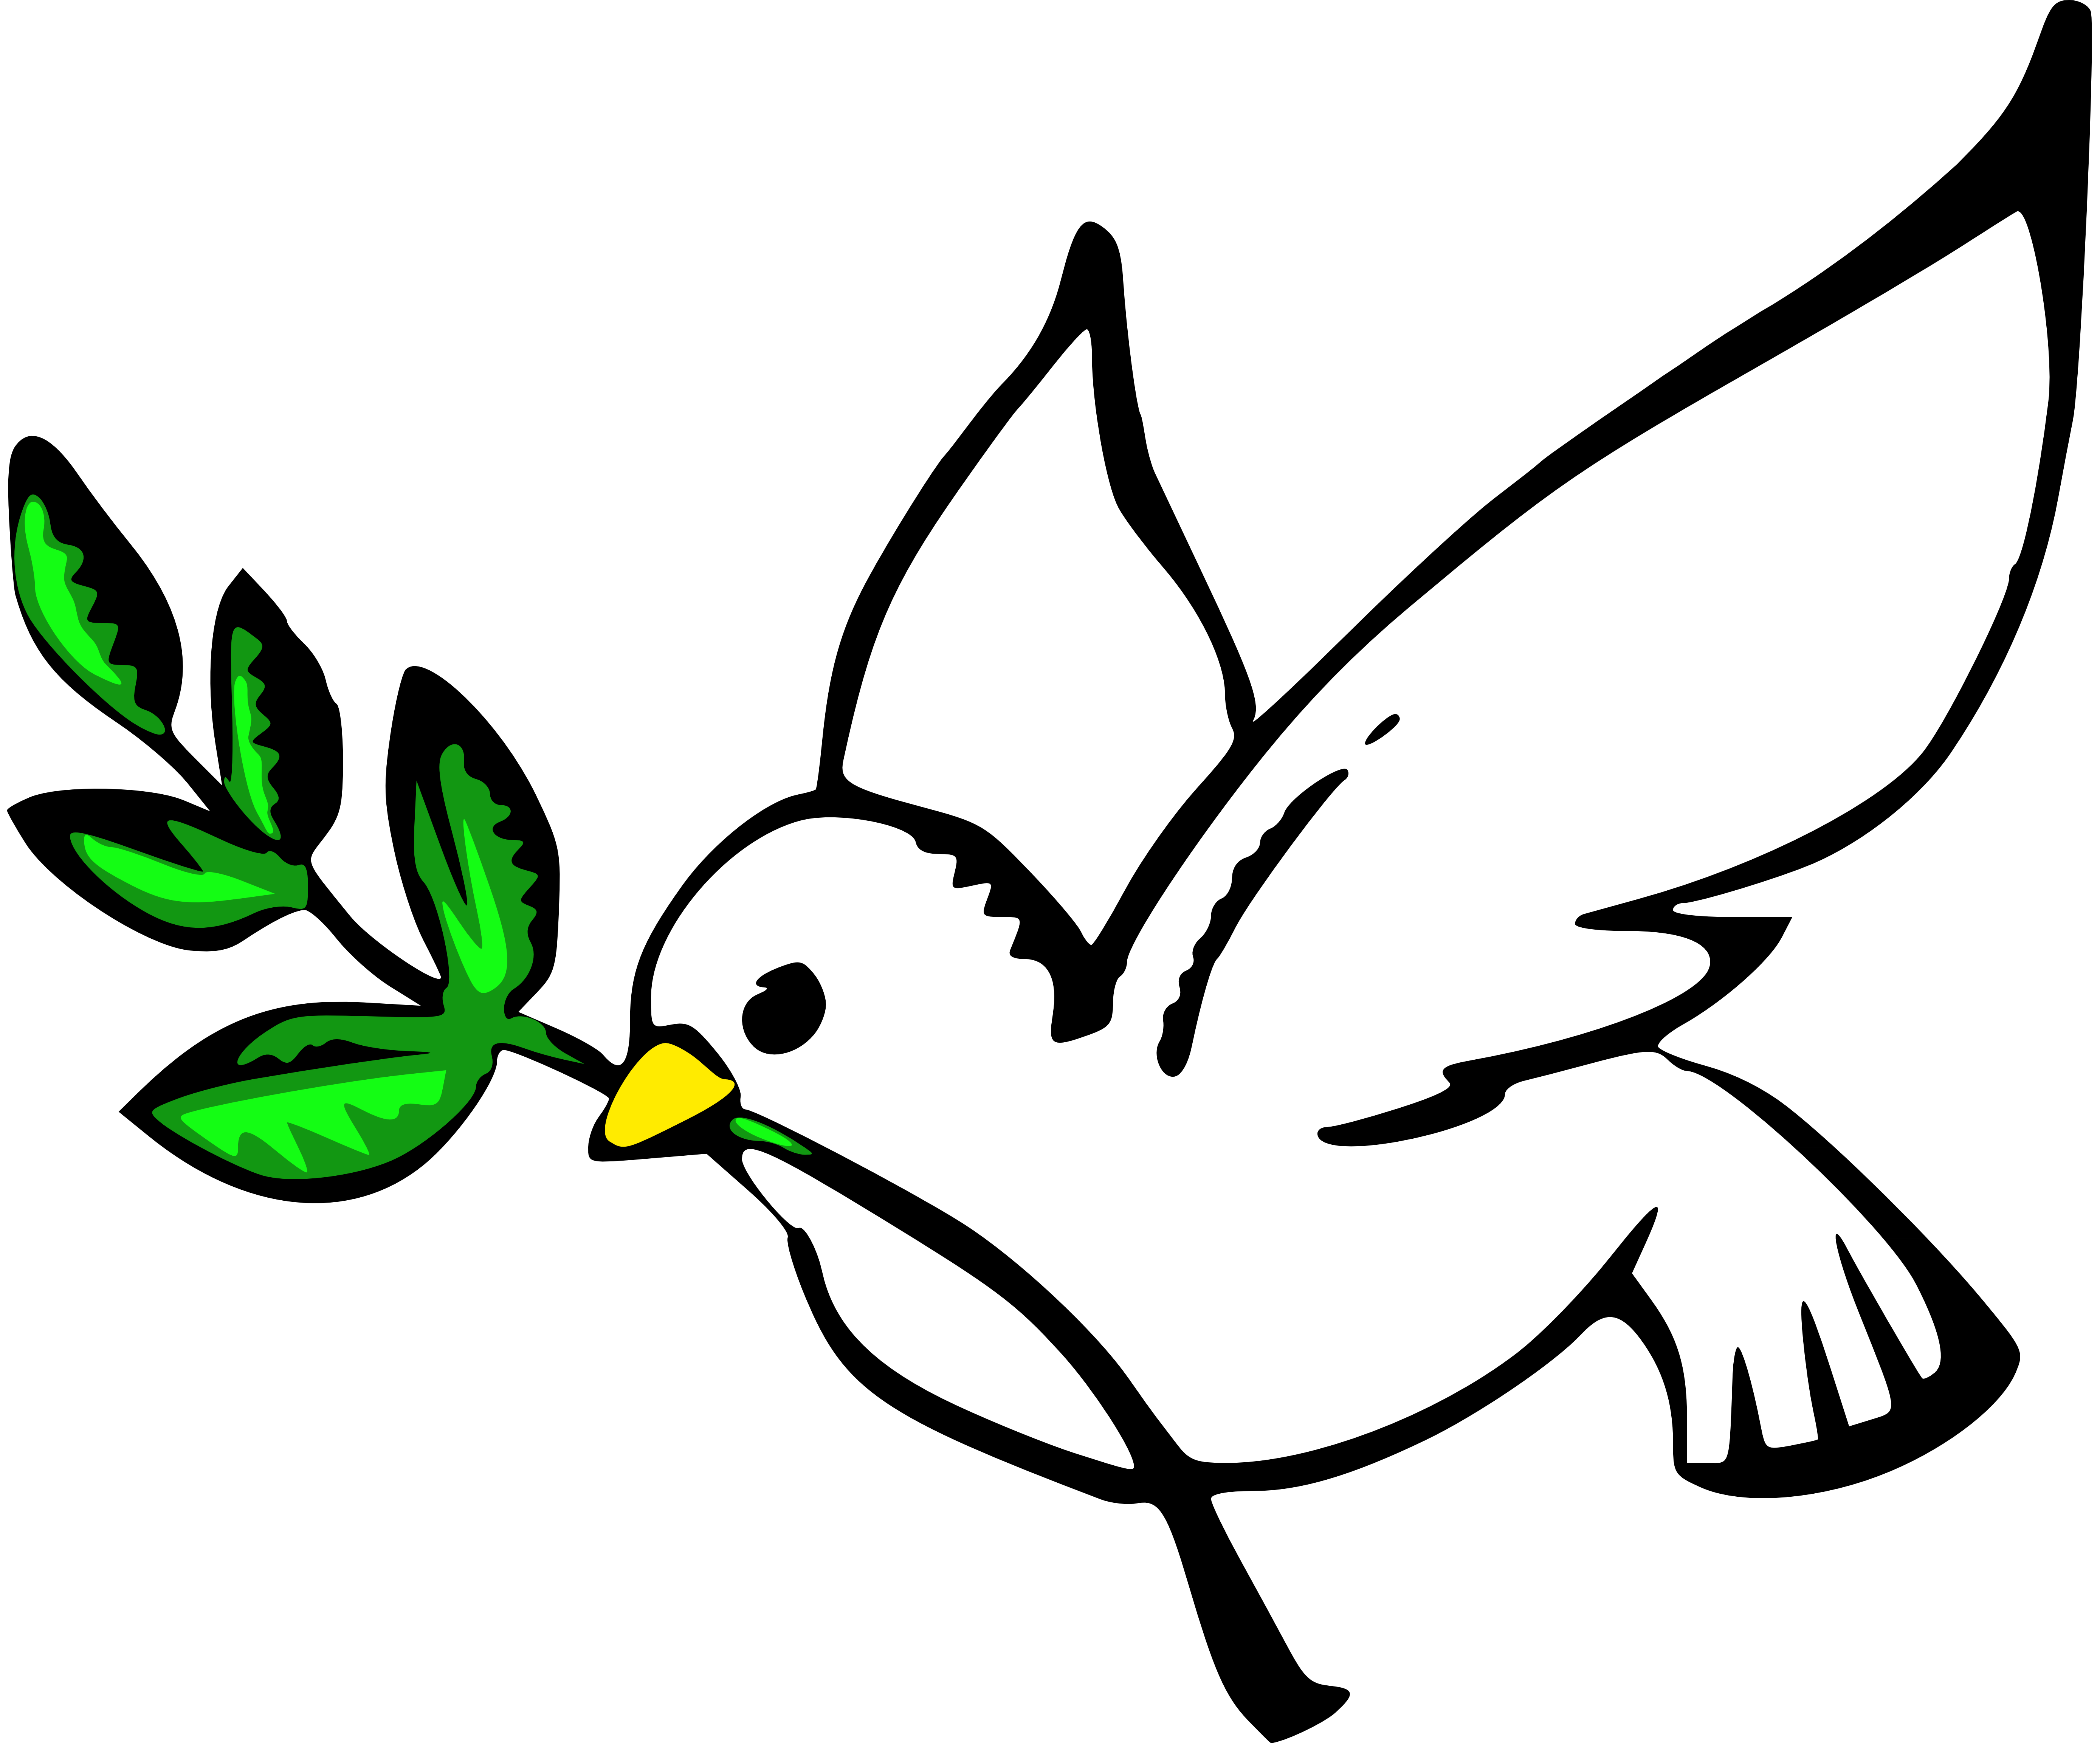 freeuse download Dove india free on. Peace clipart